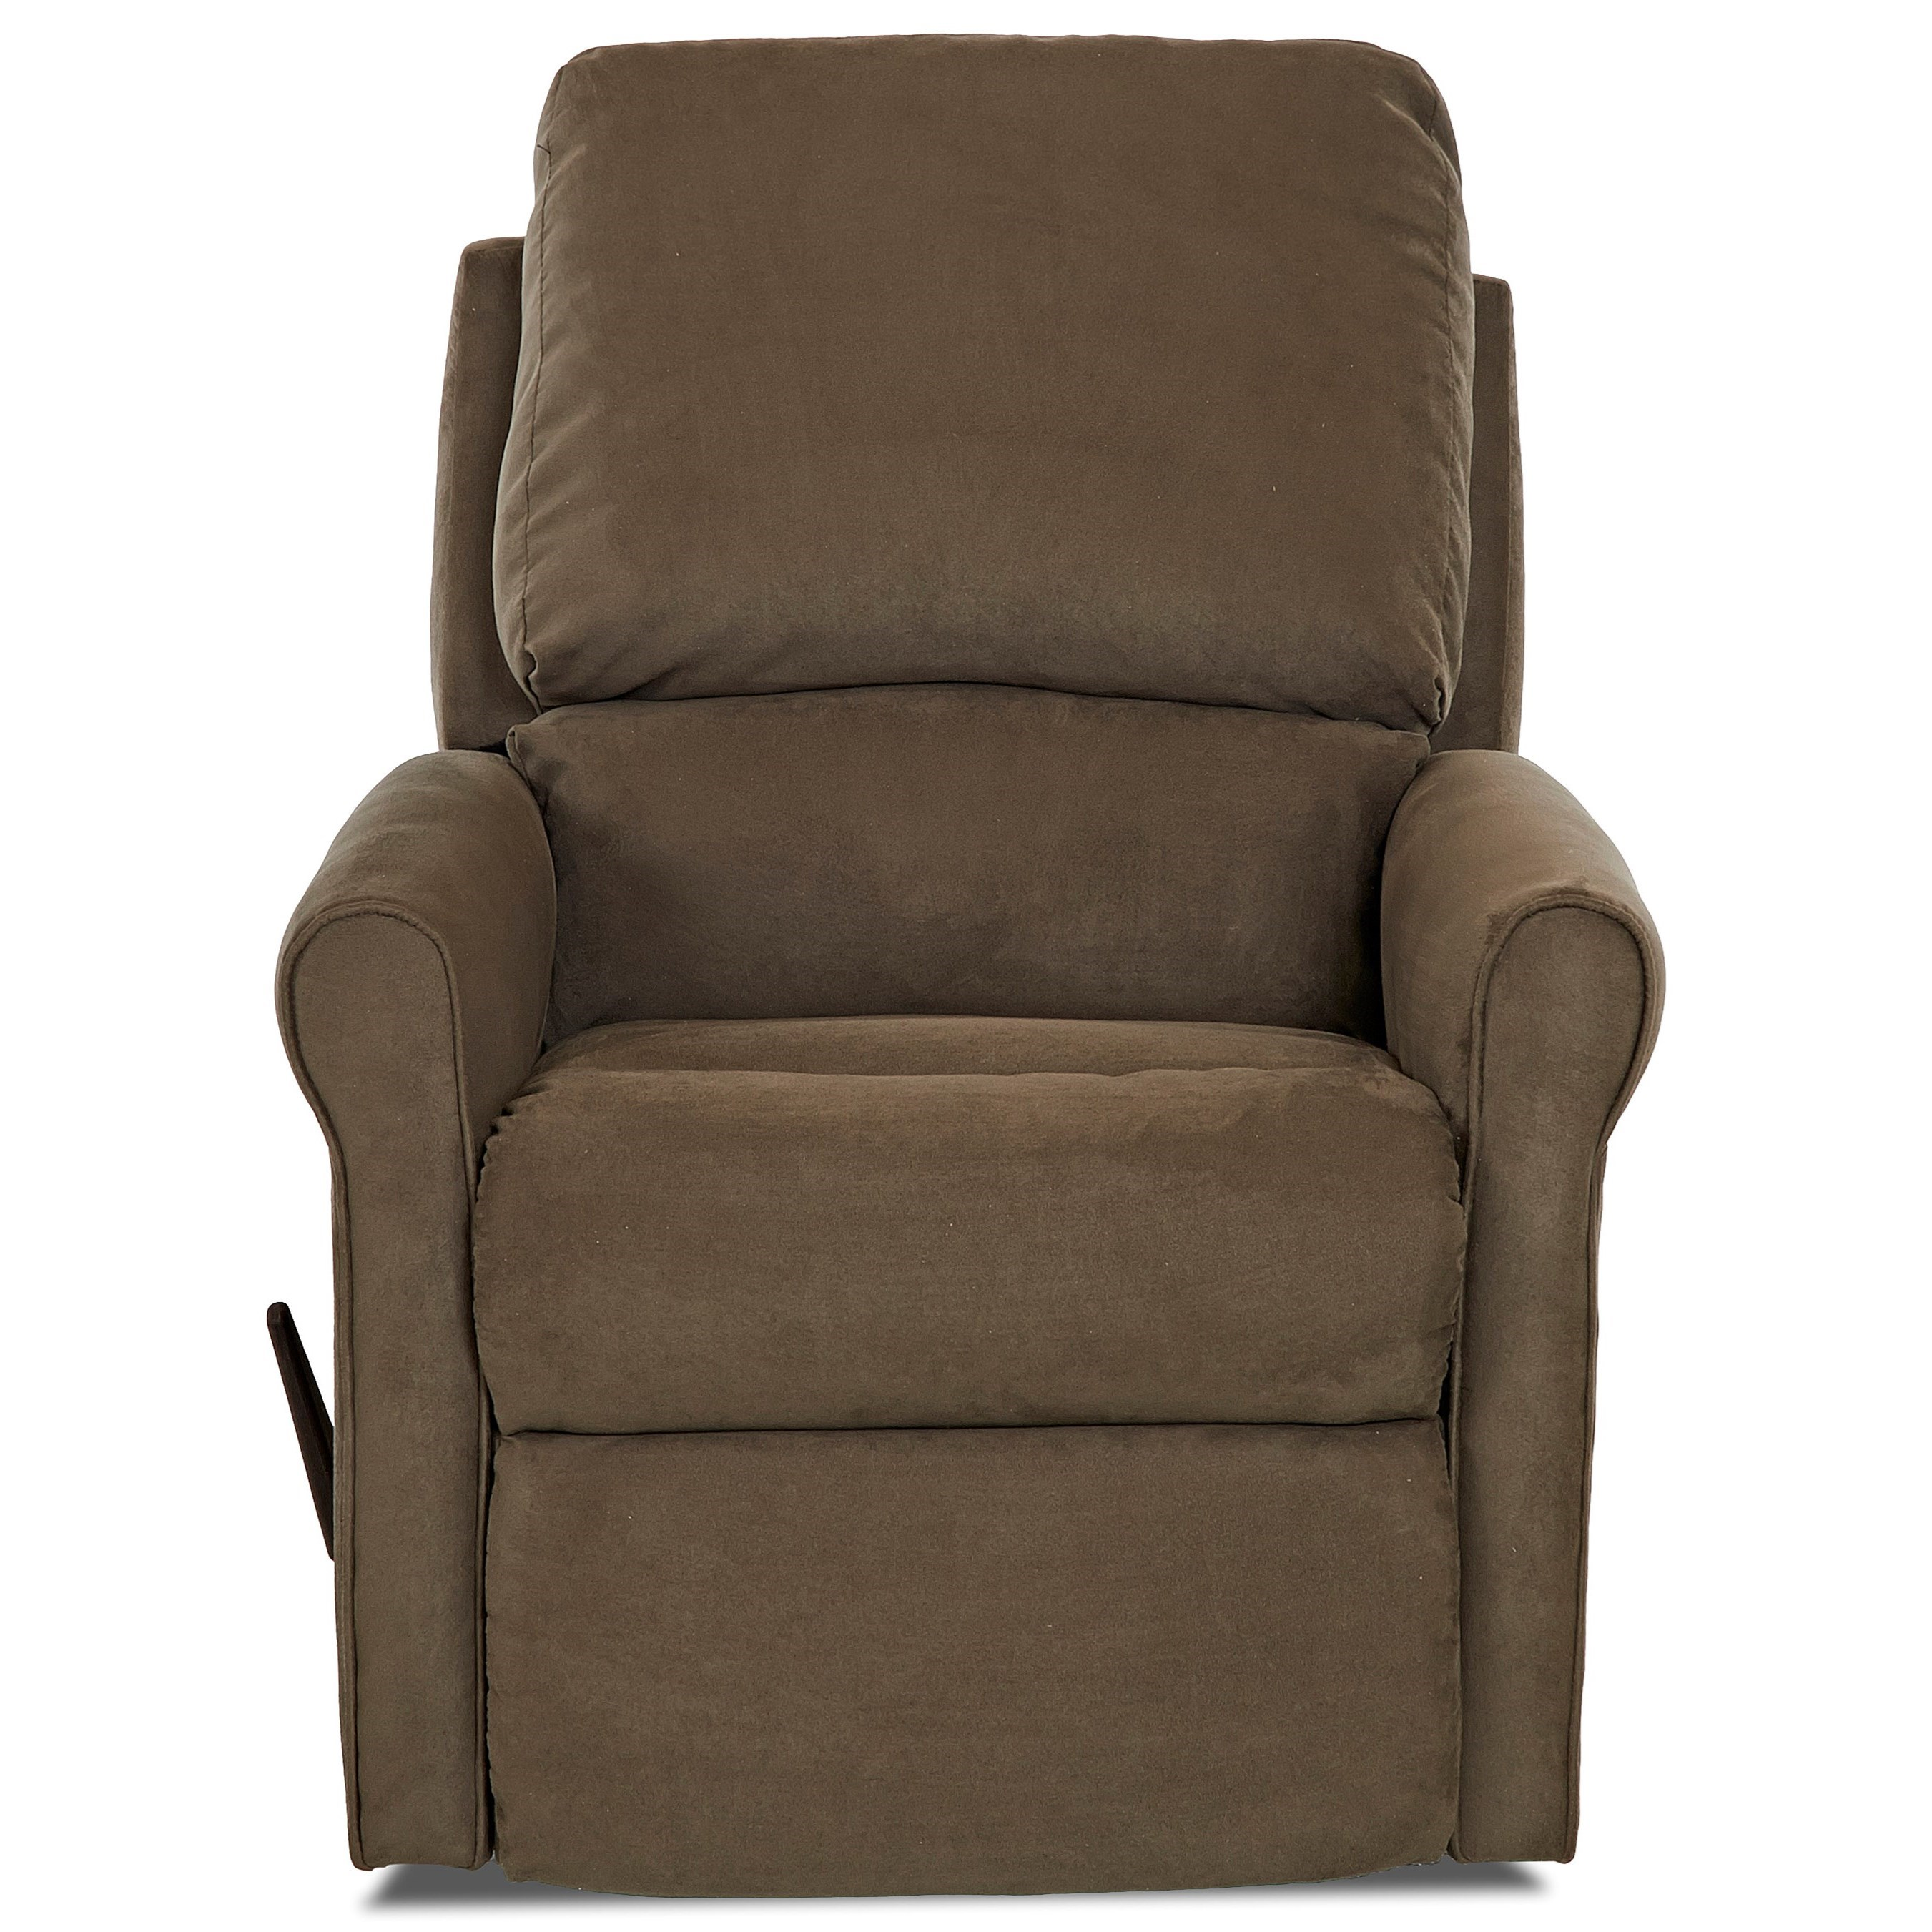 Baja Reclining Chair by Klaussner at Lapeer Furniture & Mattress Center